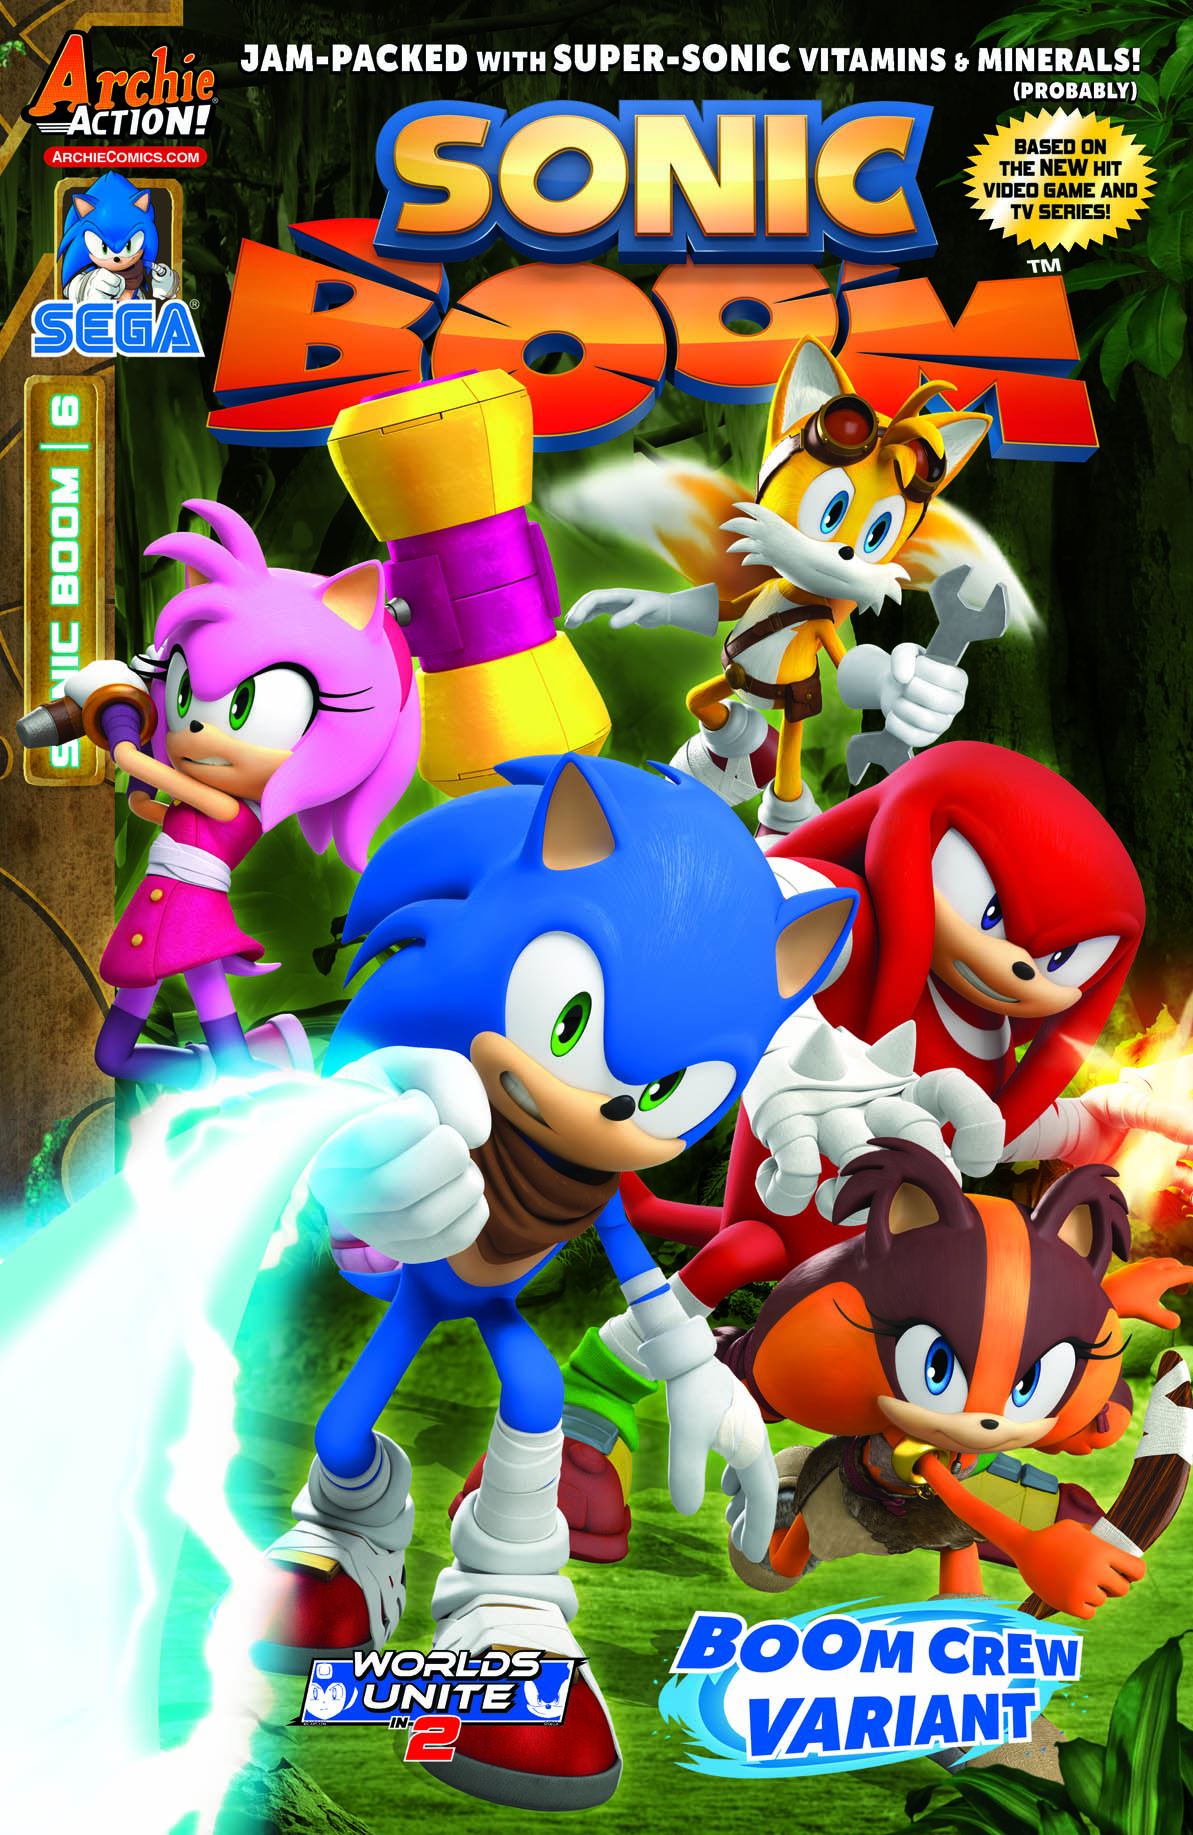 Archie Sonic Boom Issue 6 Sonic News Network the Sonic Wiki